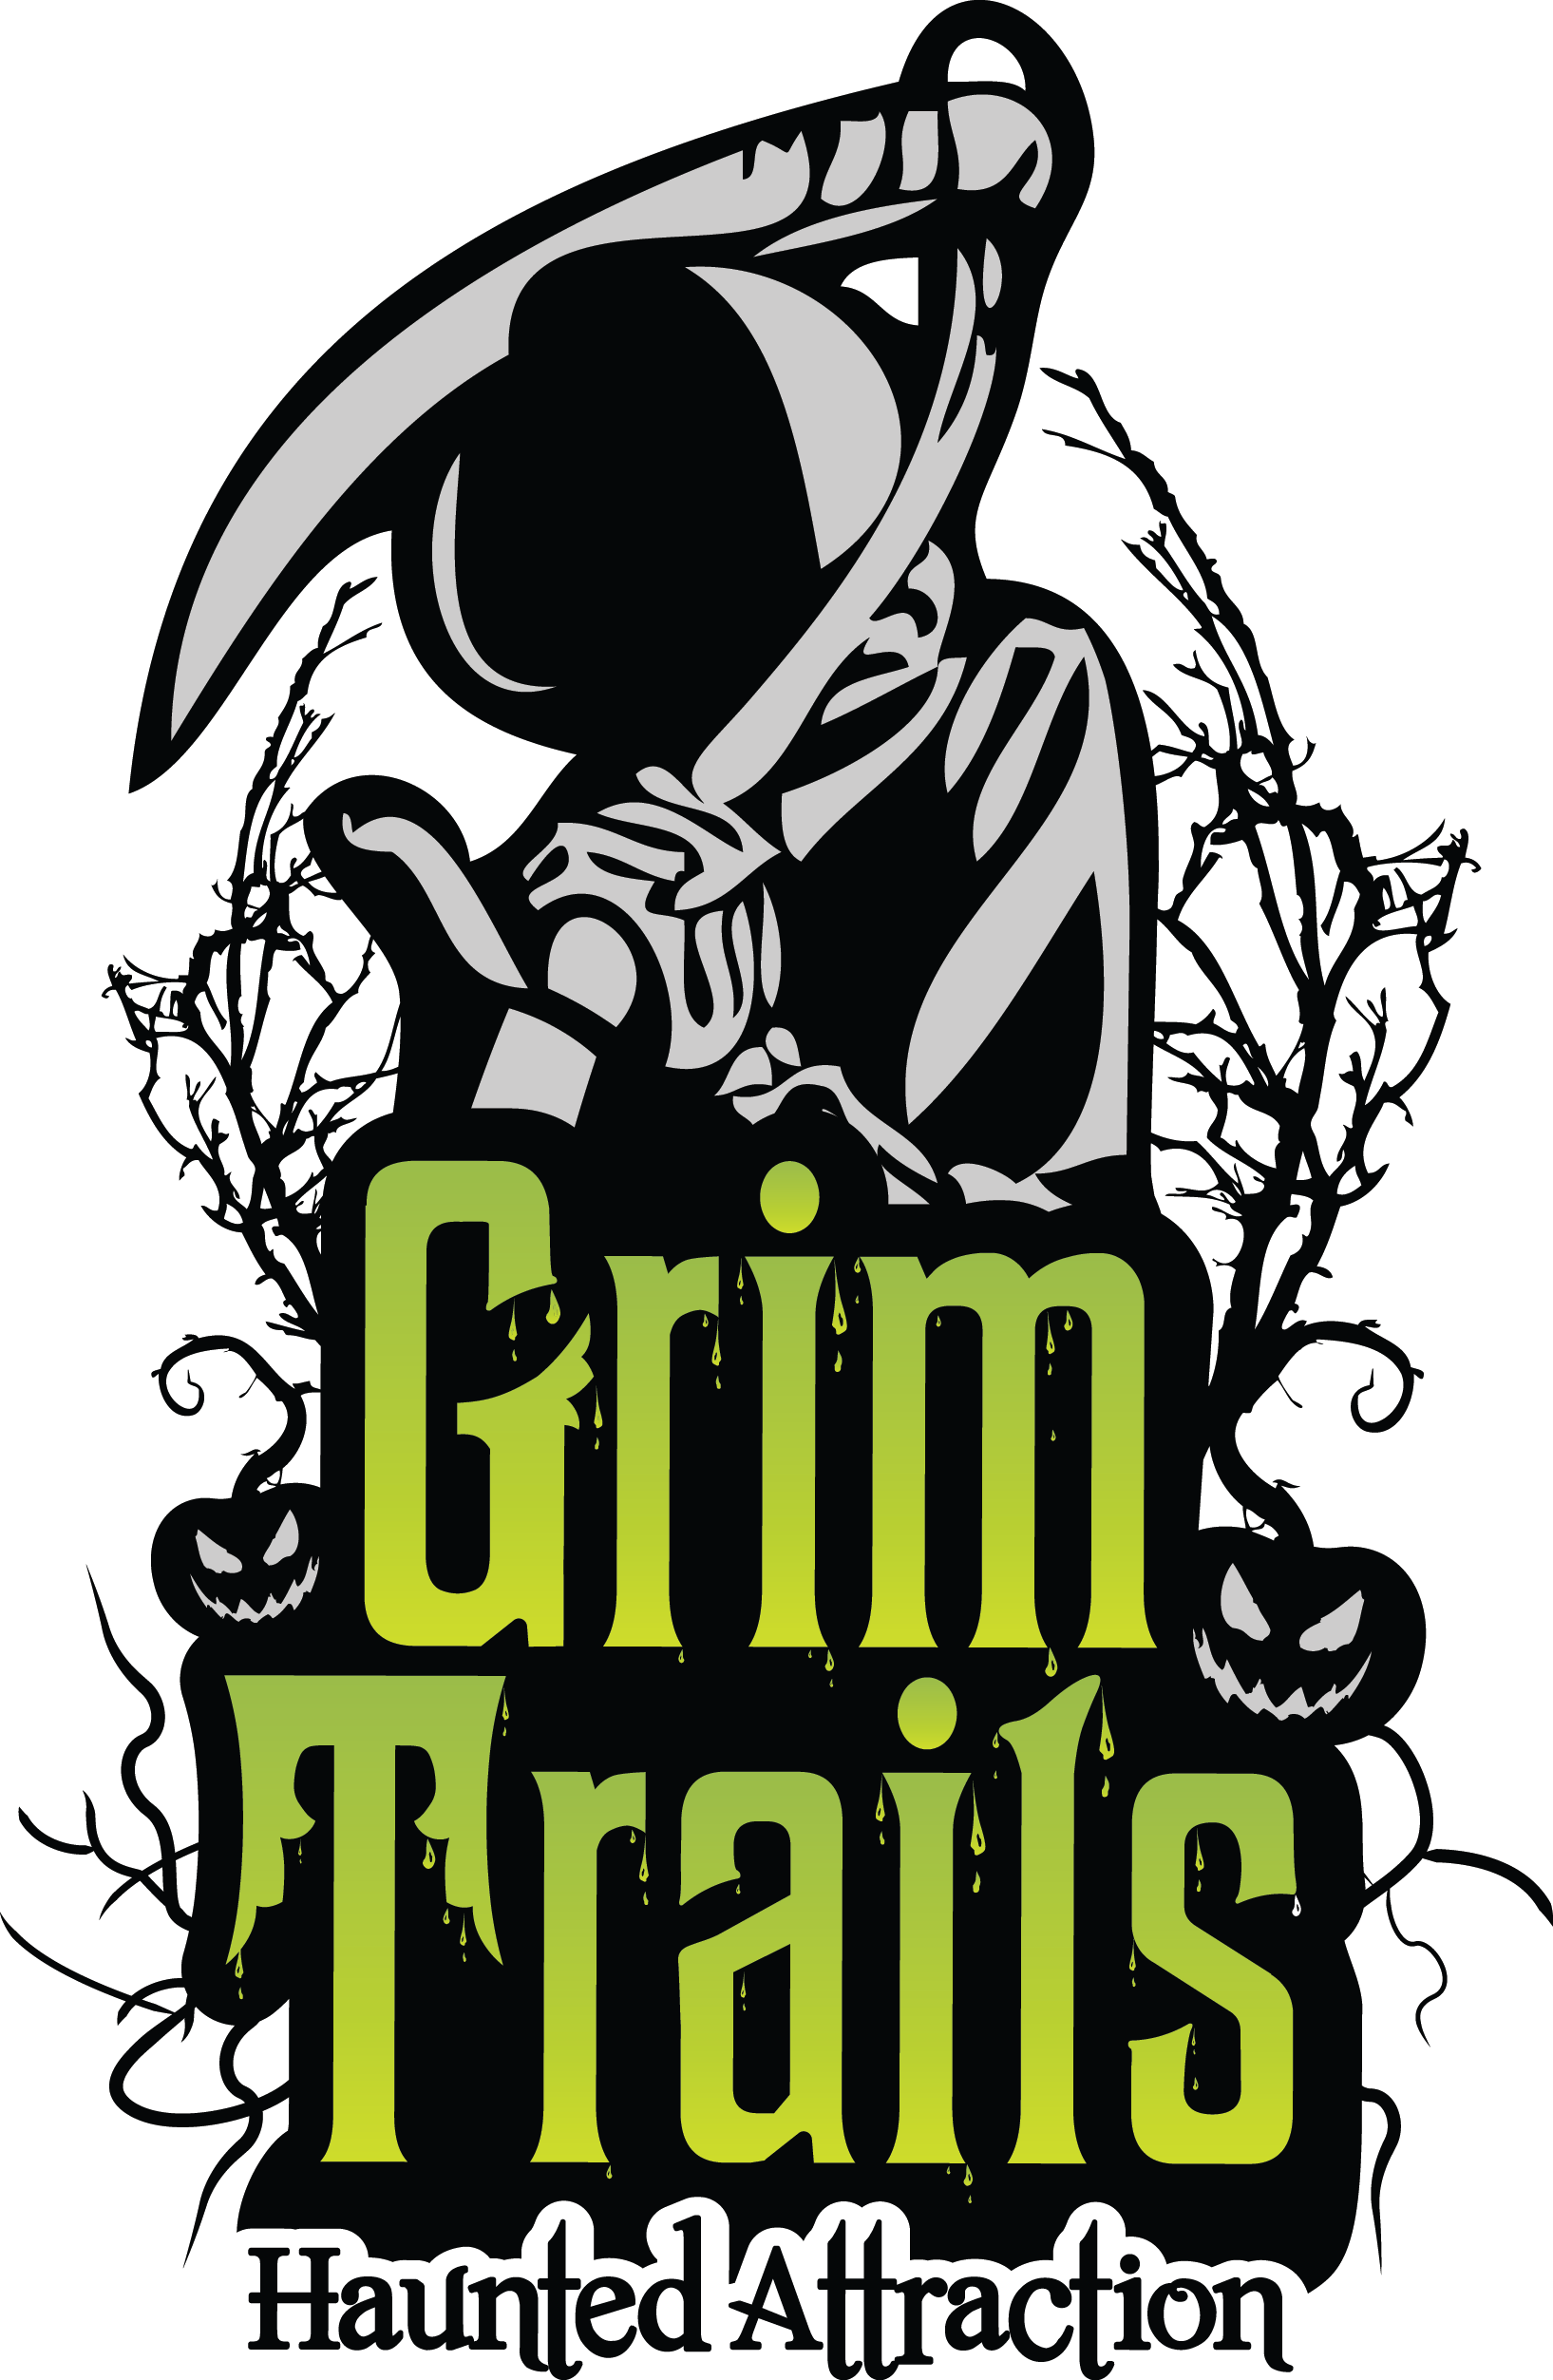 Grim Trails Haunted House Logo